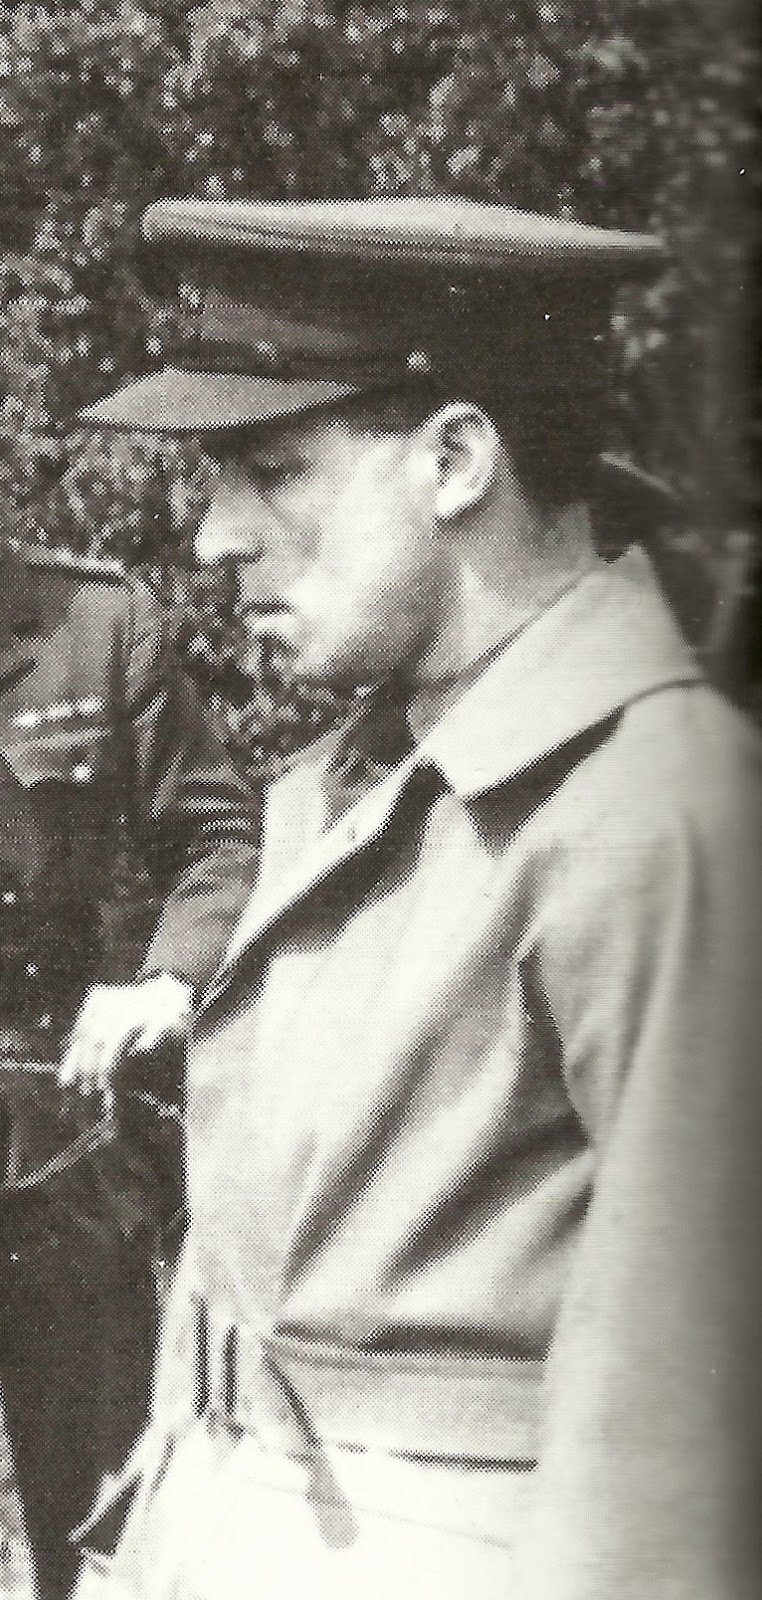 Lt. E.B. Goodacre, May 1941  (Imperial War Museum,  HU 66766, Fair Use)